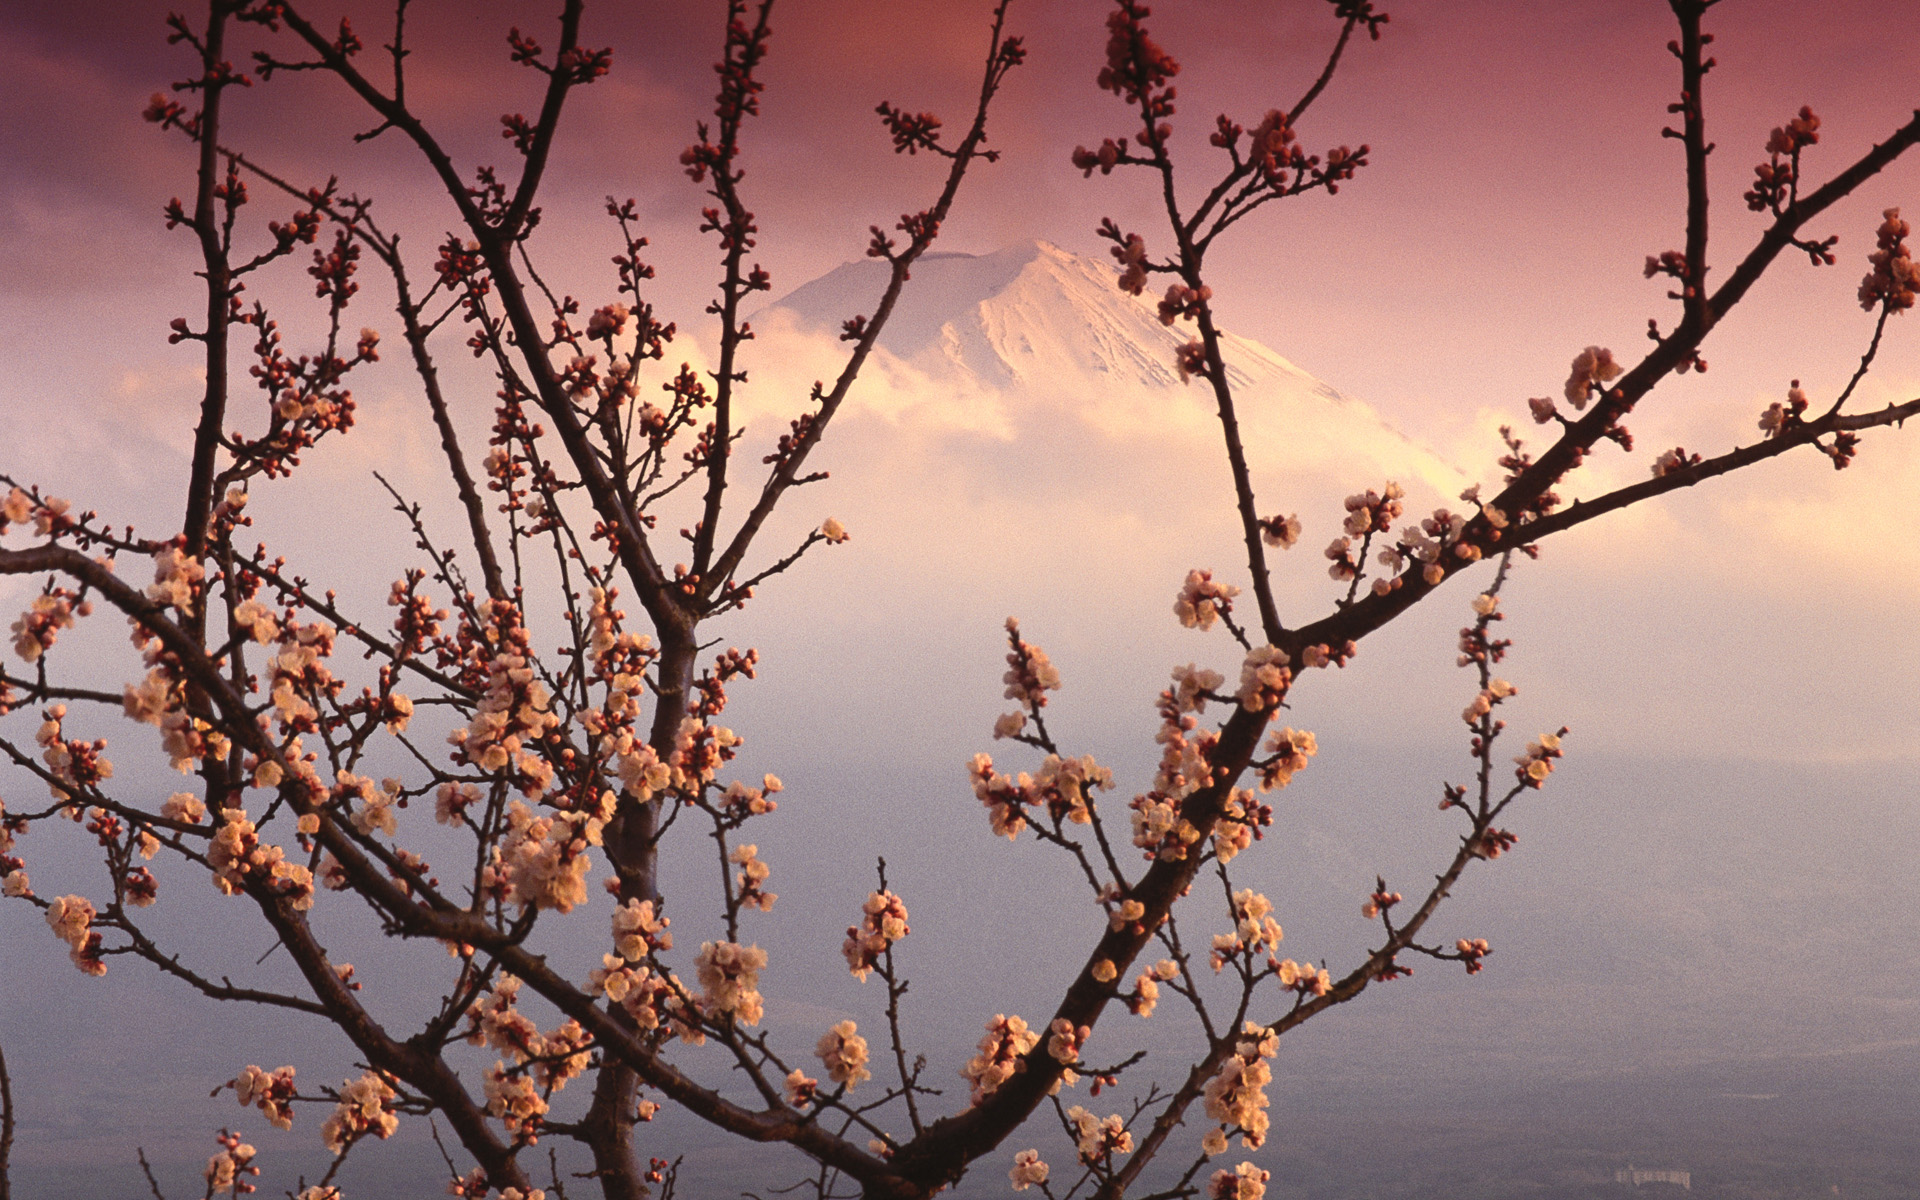 Mount Fuji and Plum Blossoms